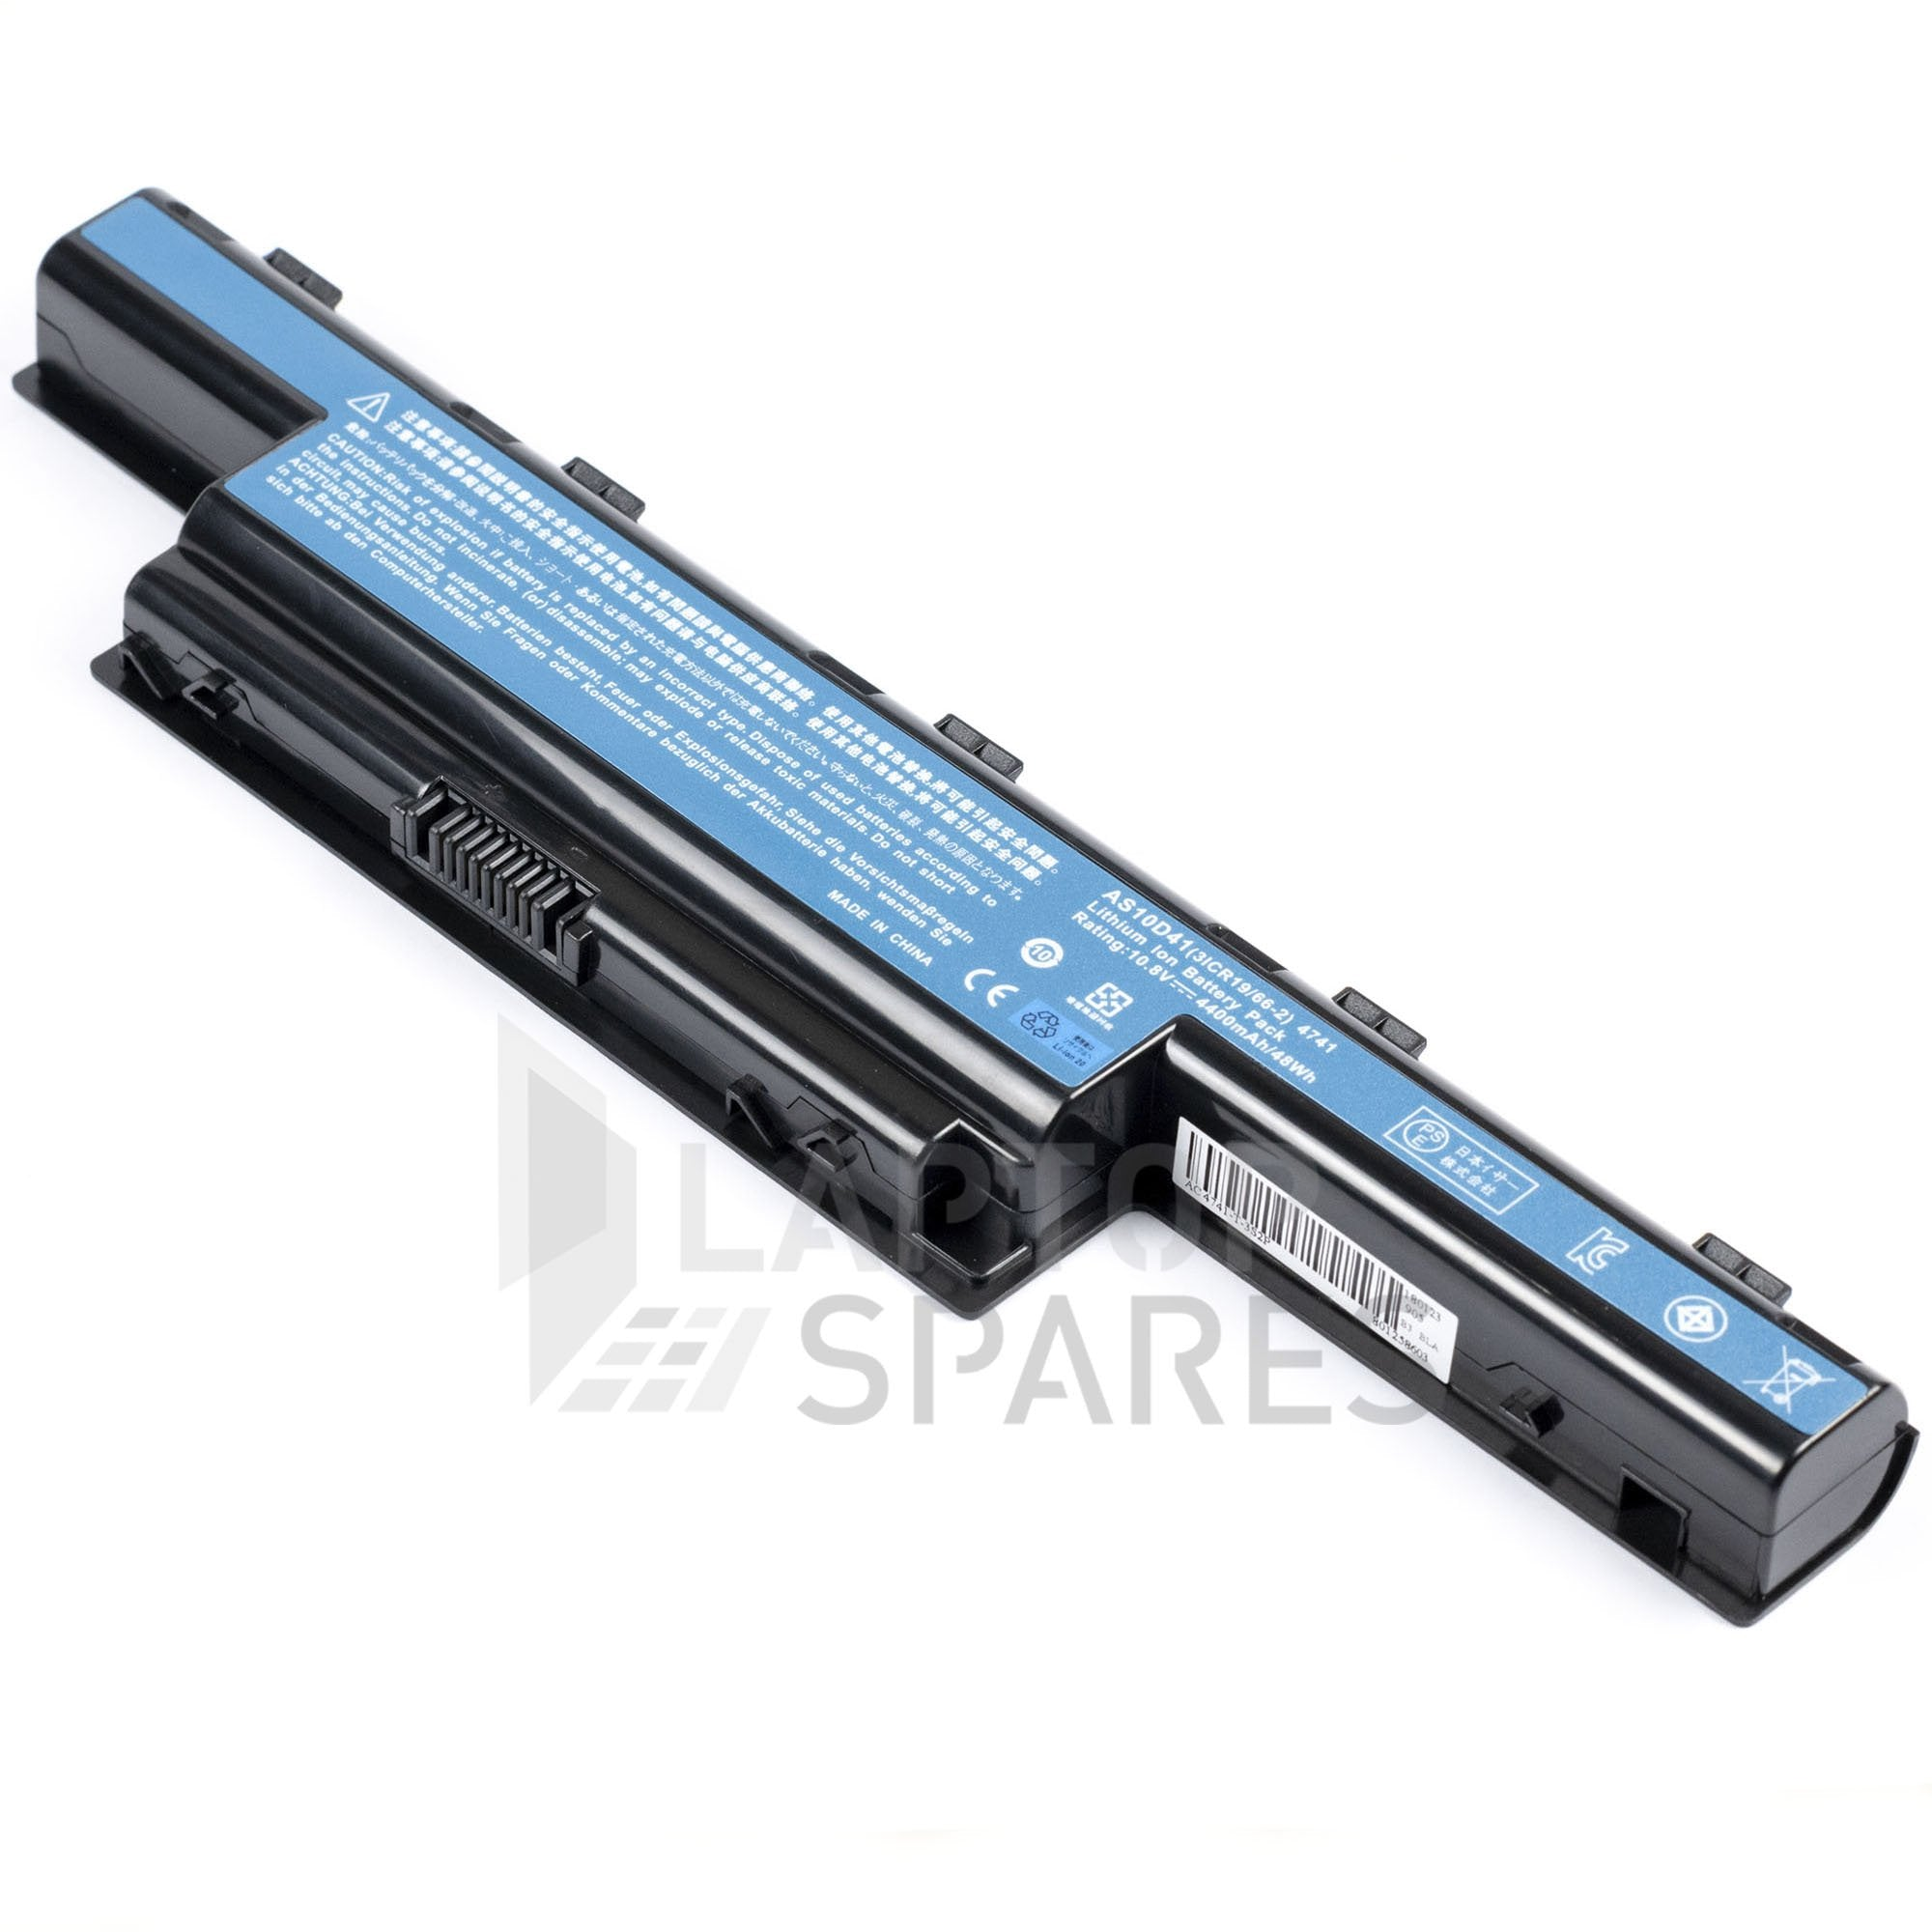 Acer Aspire 4741Z 4741ZG 4743G 4400mAh 6 Cell Battery